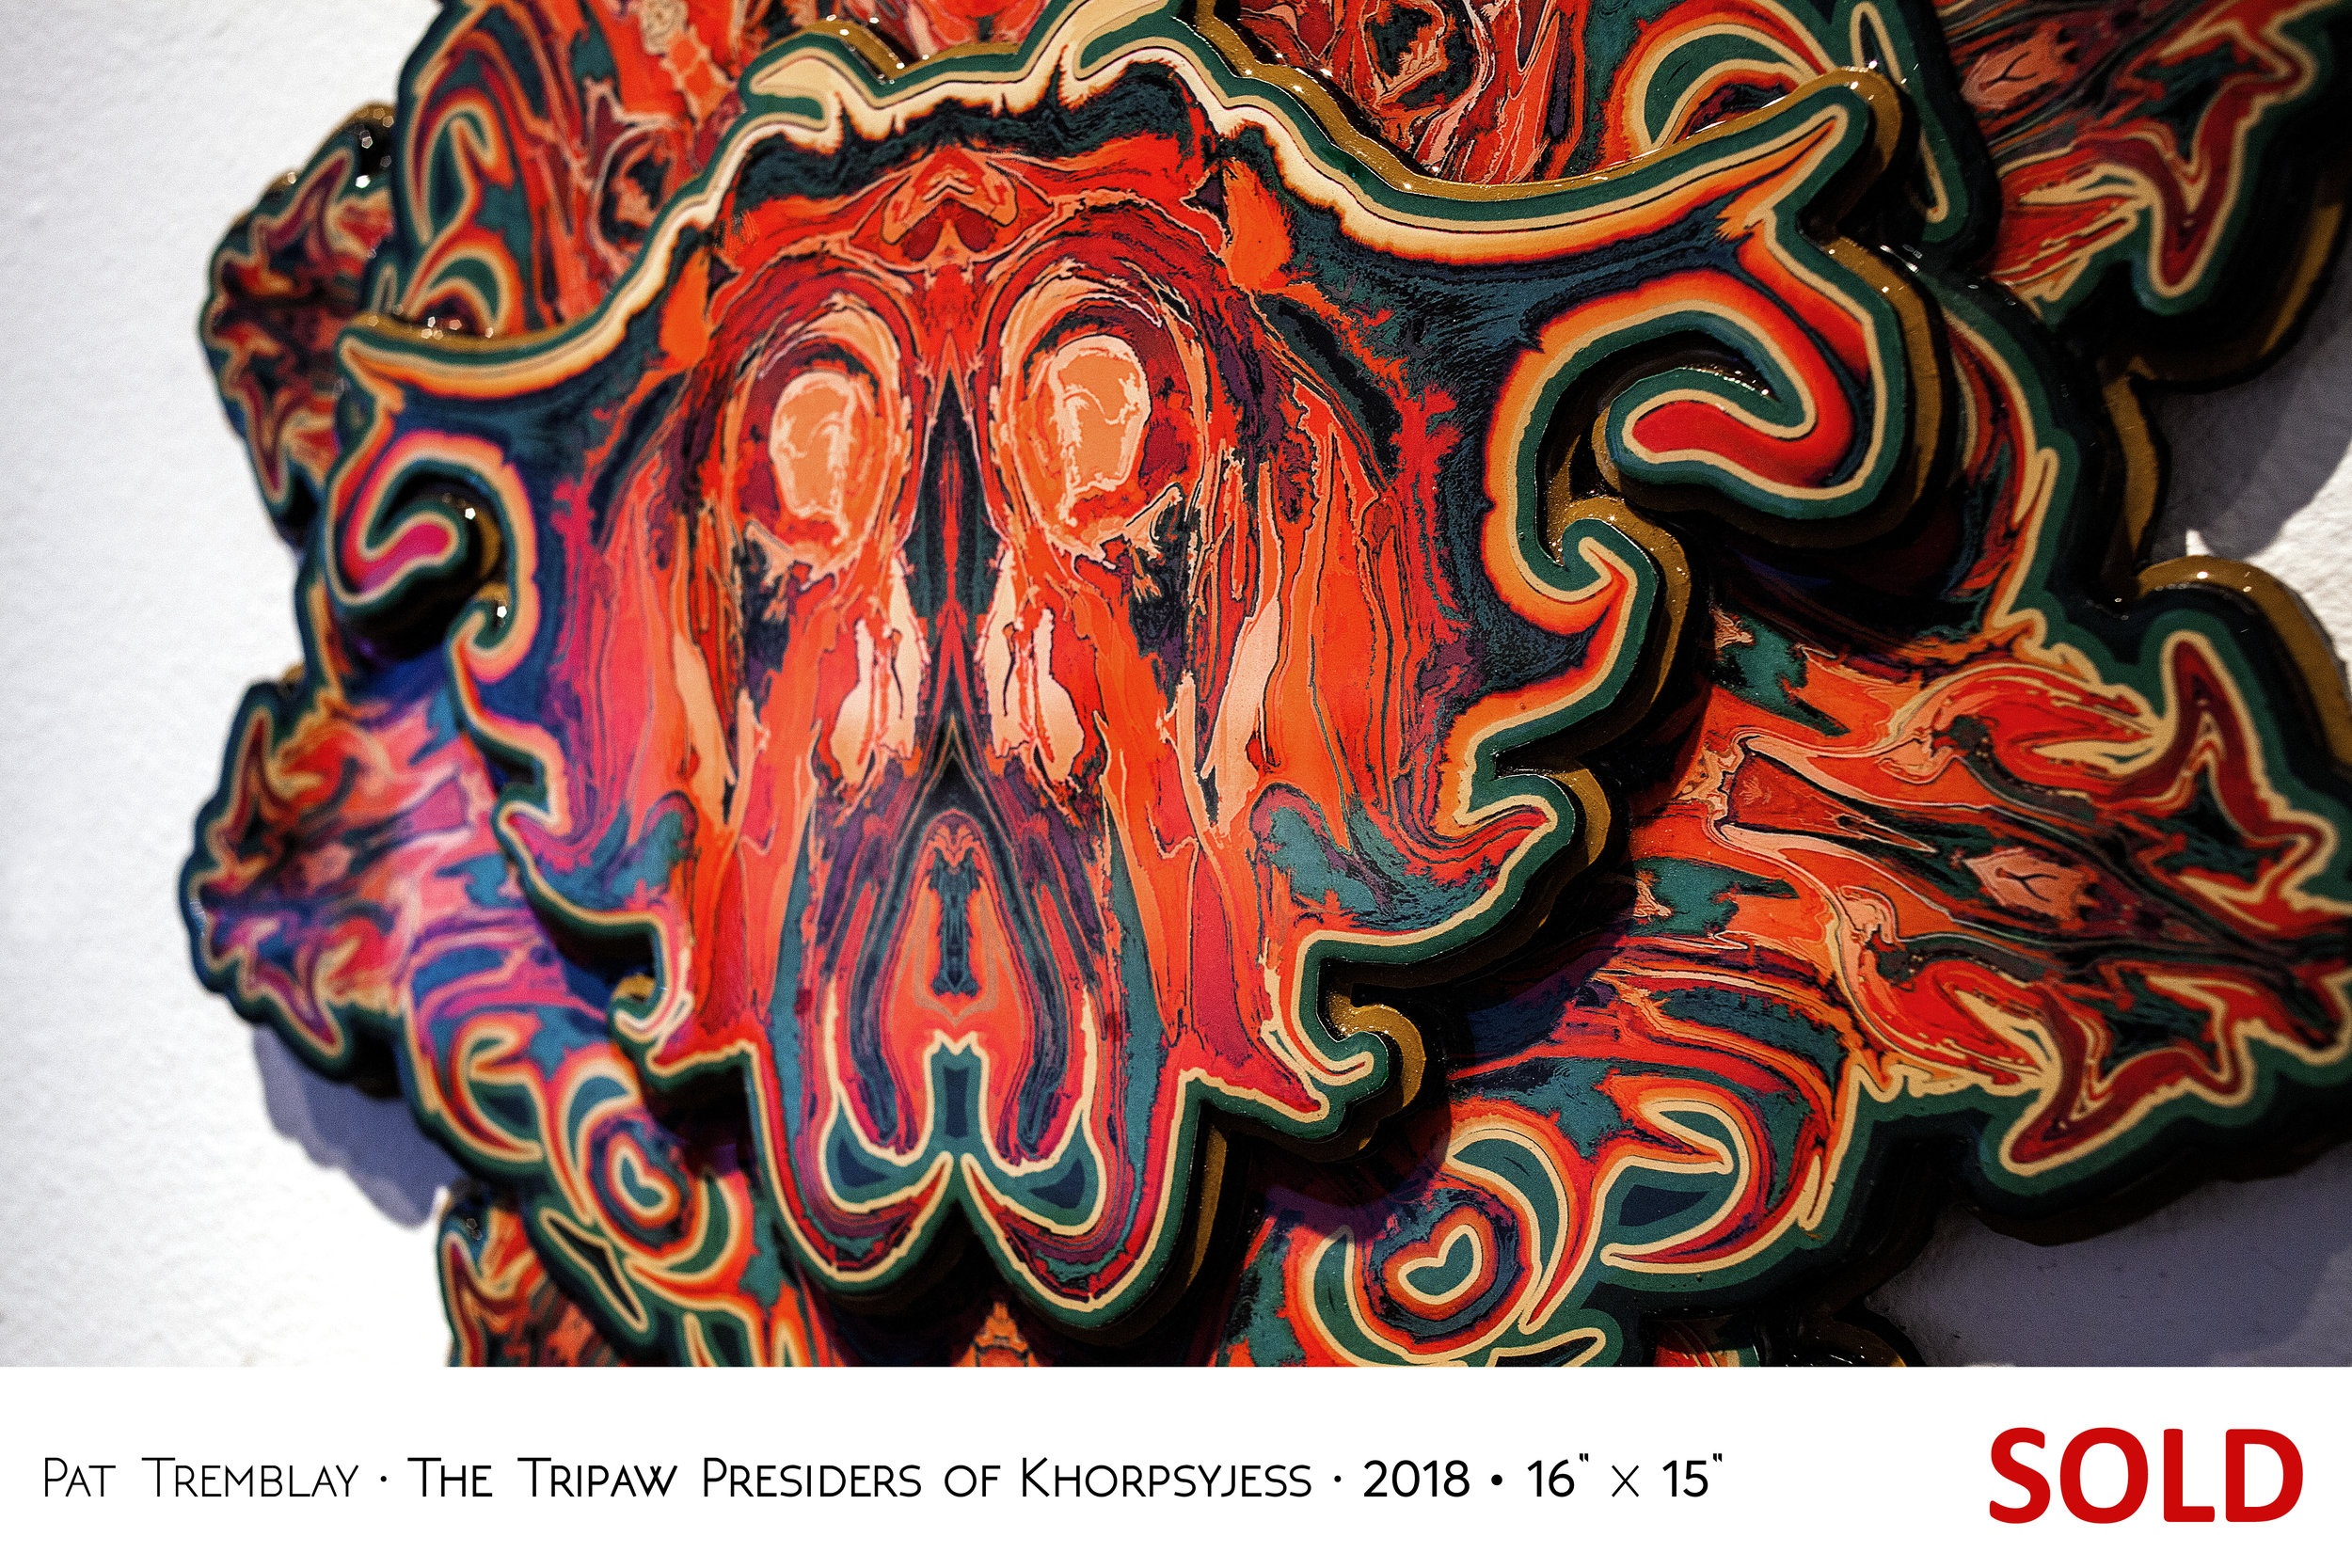 The Tripaw Presiders of Khorpsyjess(SOLD)02.jpg